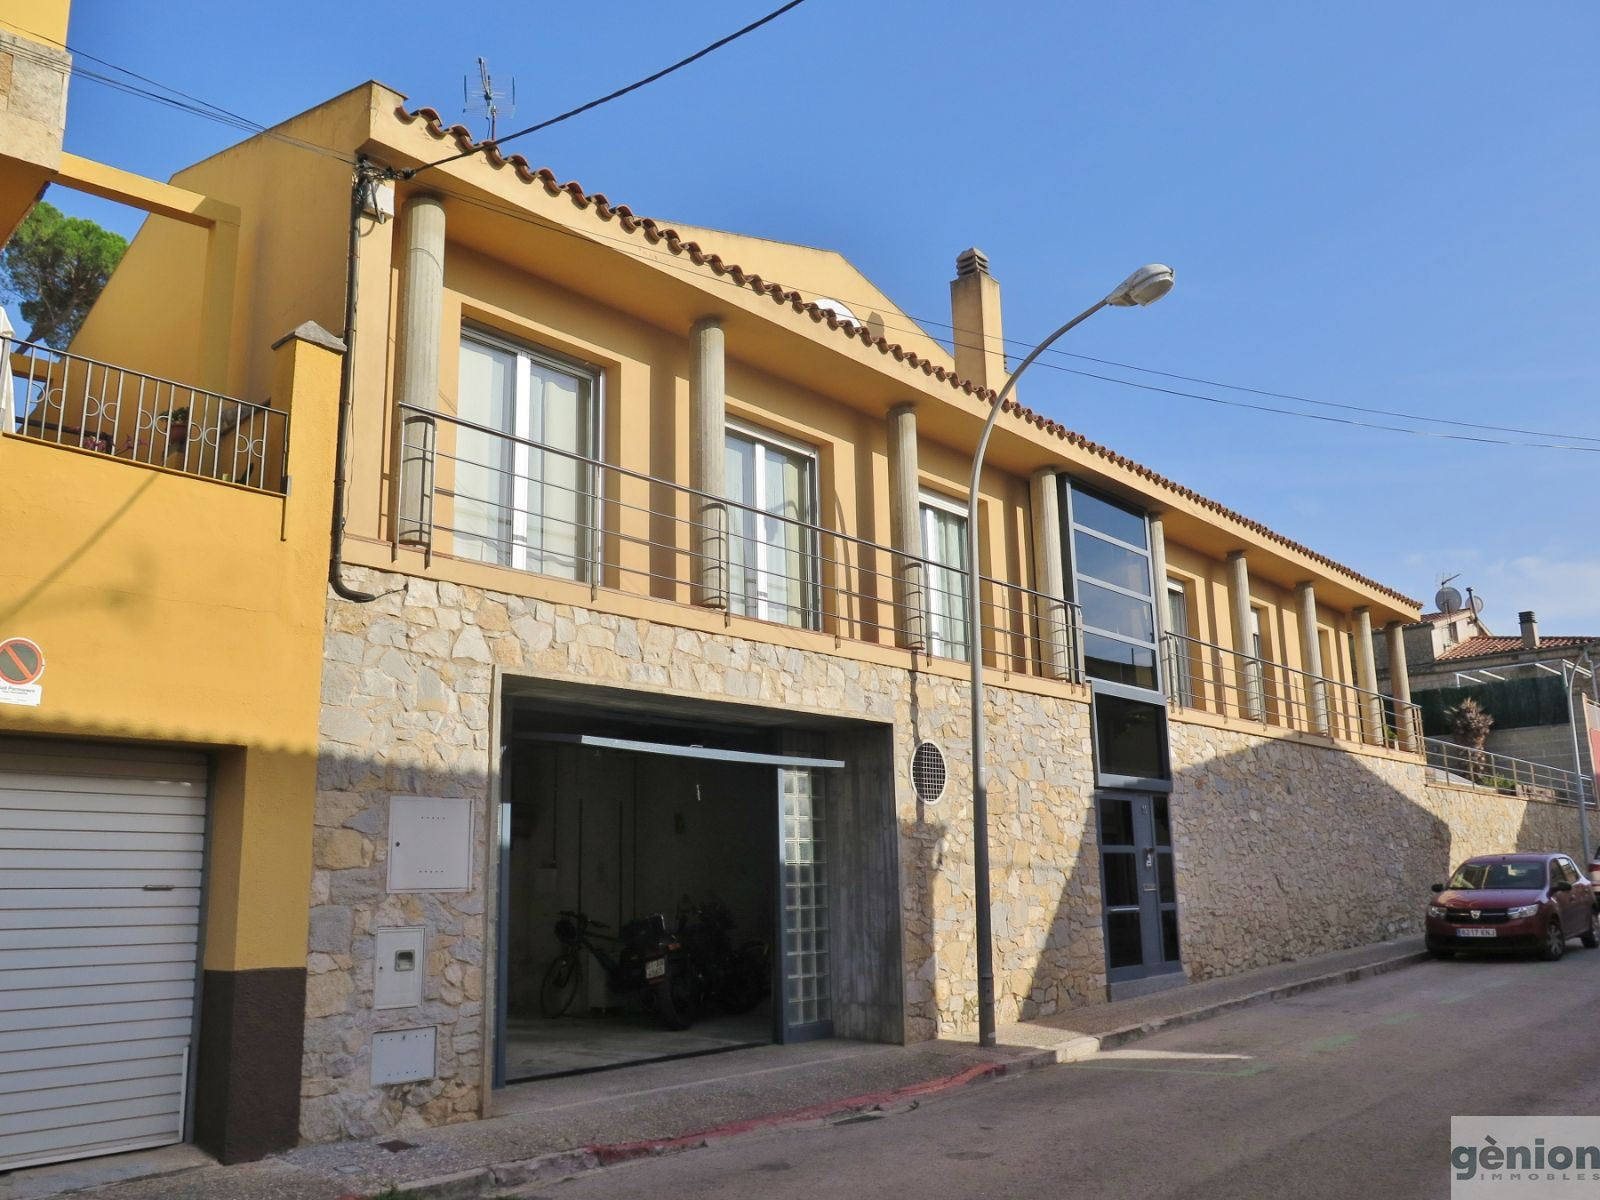 HOUSE IN LES PEDRERES, GIRONA. NEXT TO THE BARRI VELL (OLD QUARTER), WITH SUN,LIGHT AND VIEWS